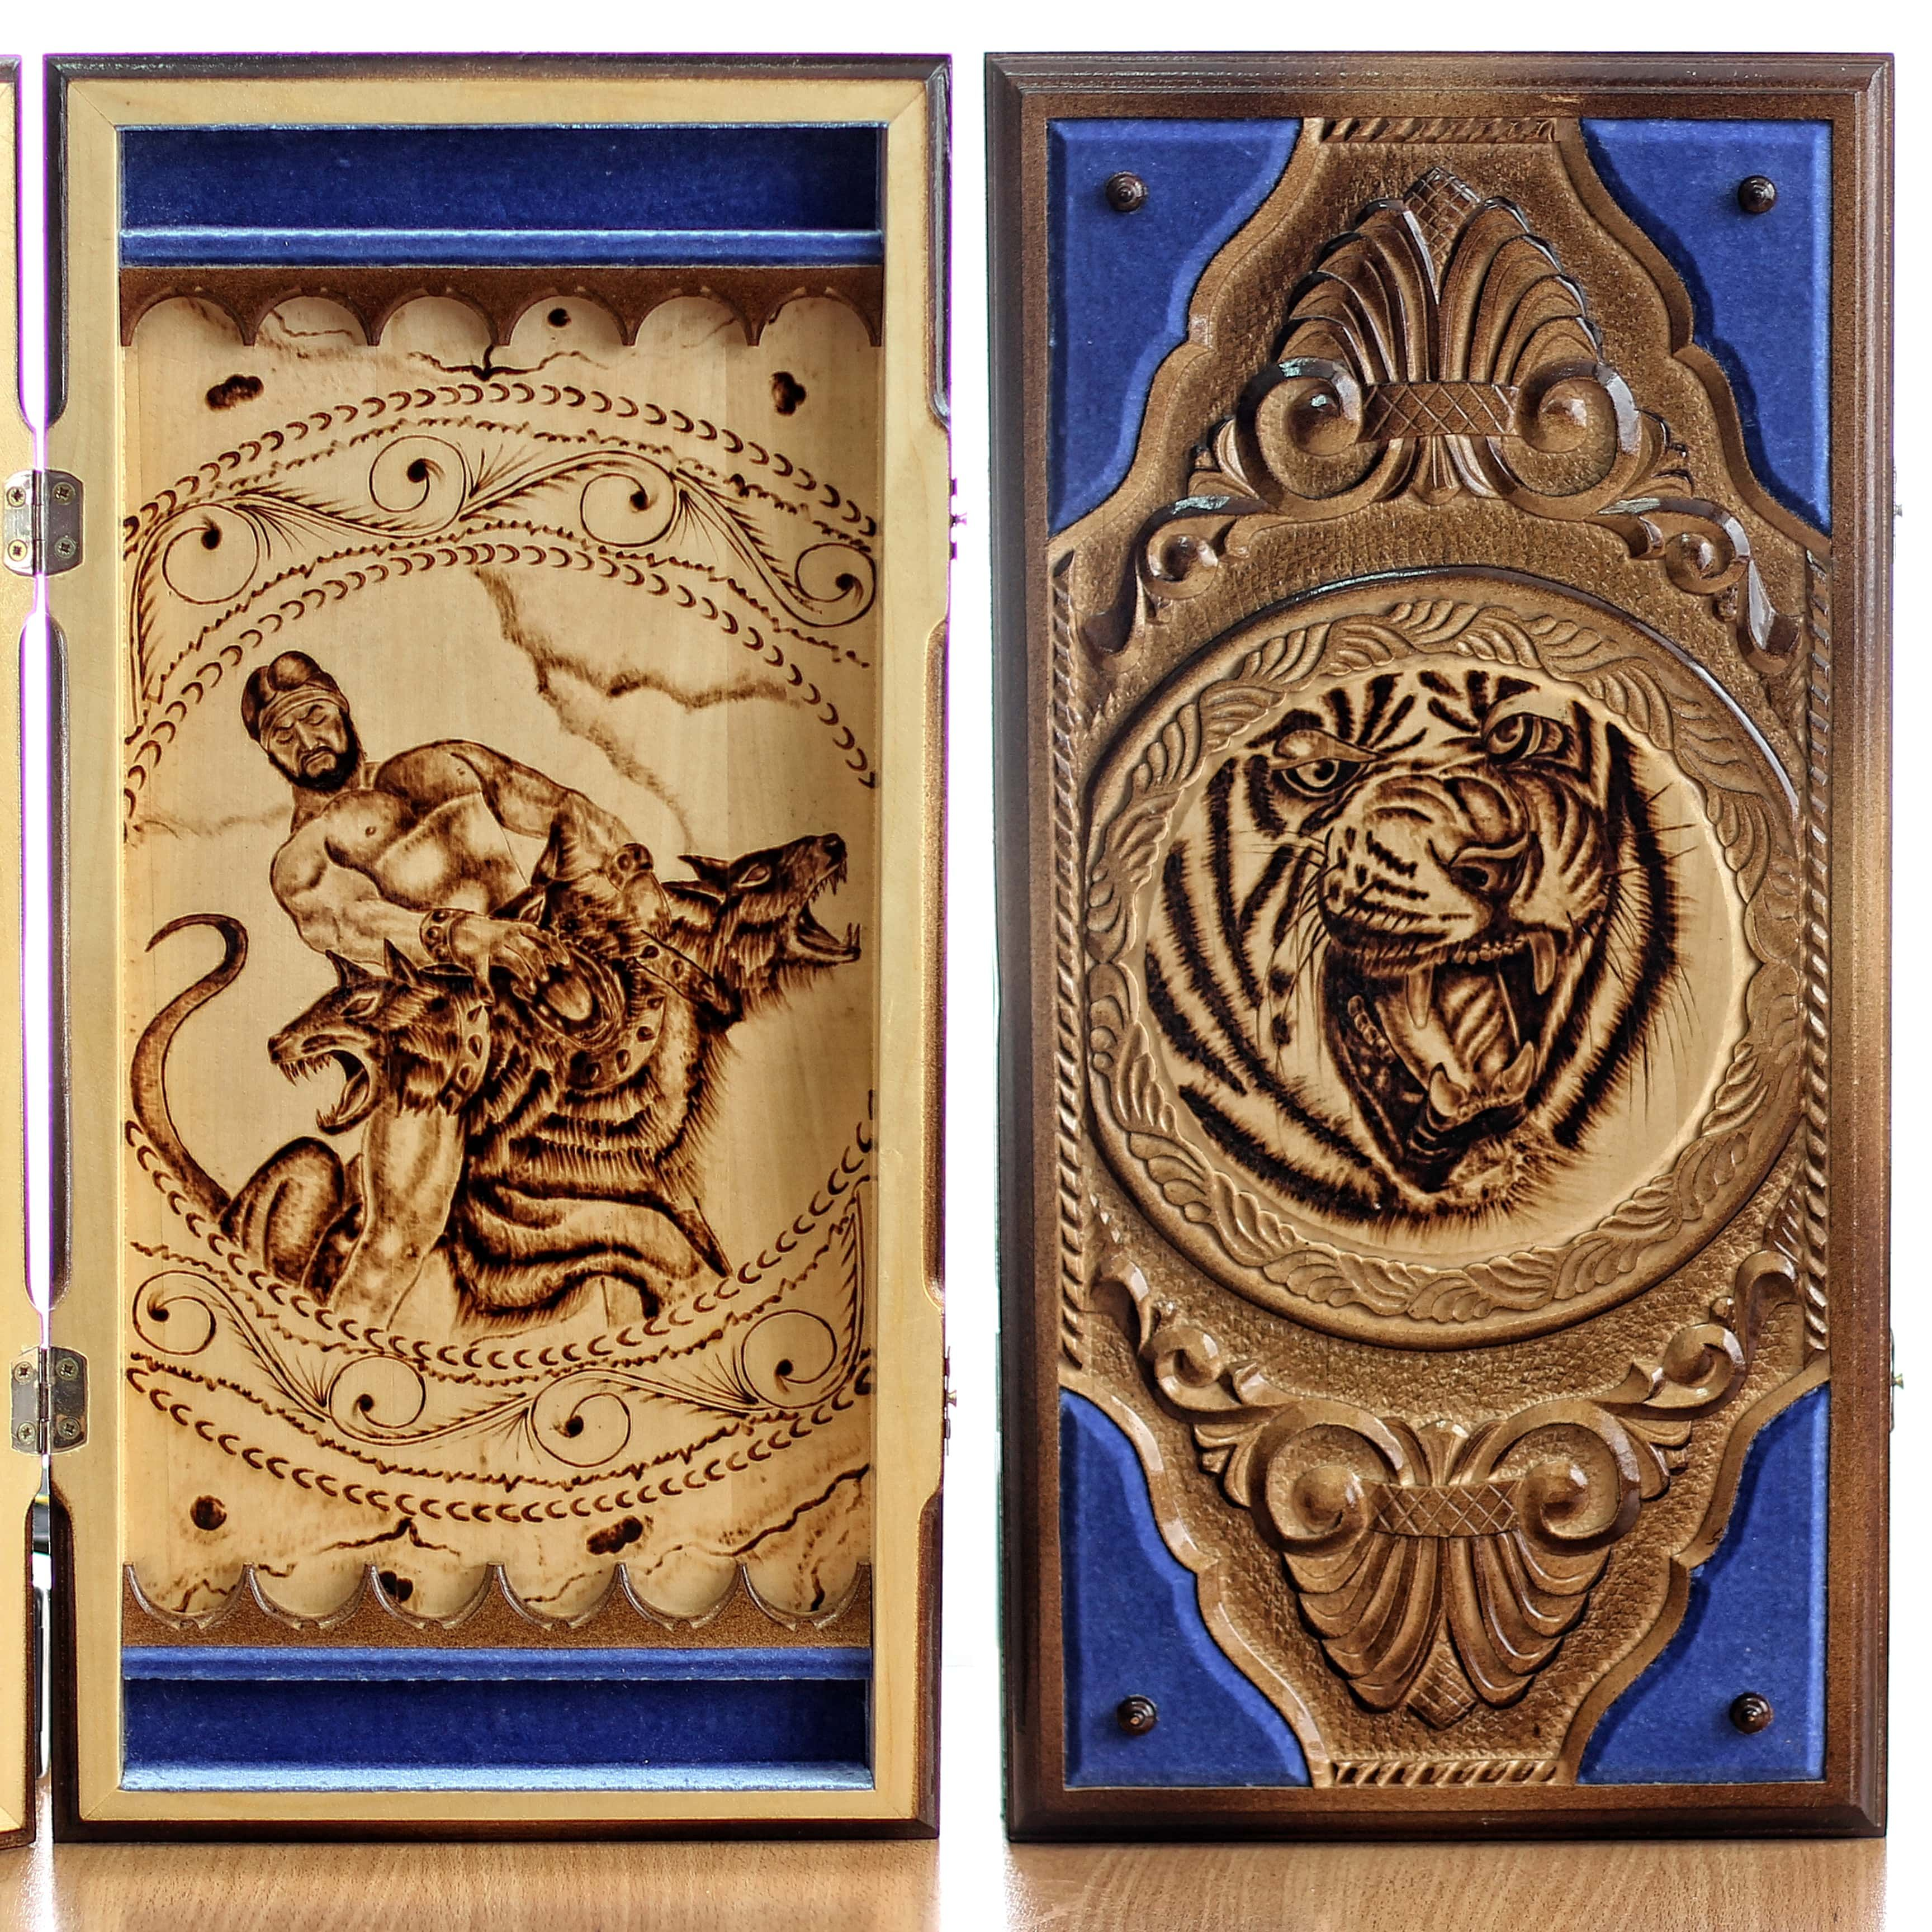 Backgammon Set Tiger And Hercules There Are Images Of Tigers On